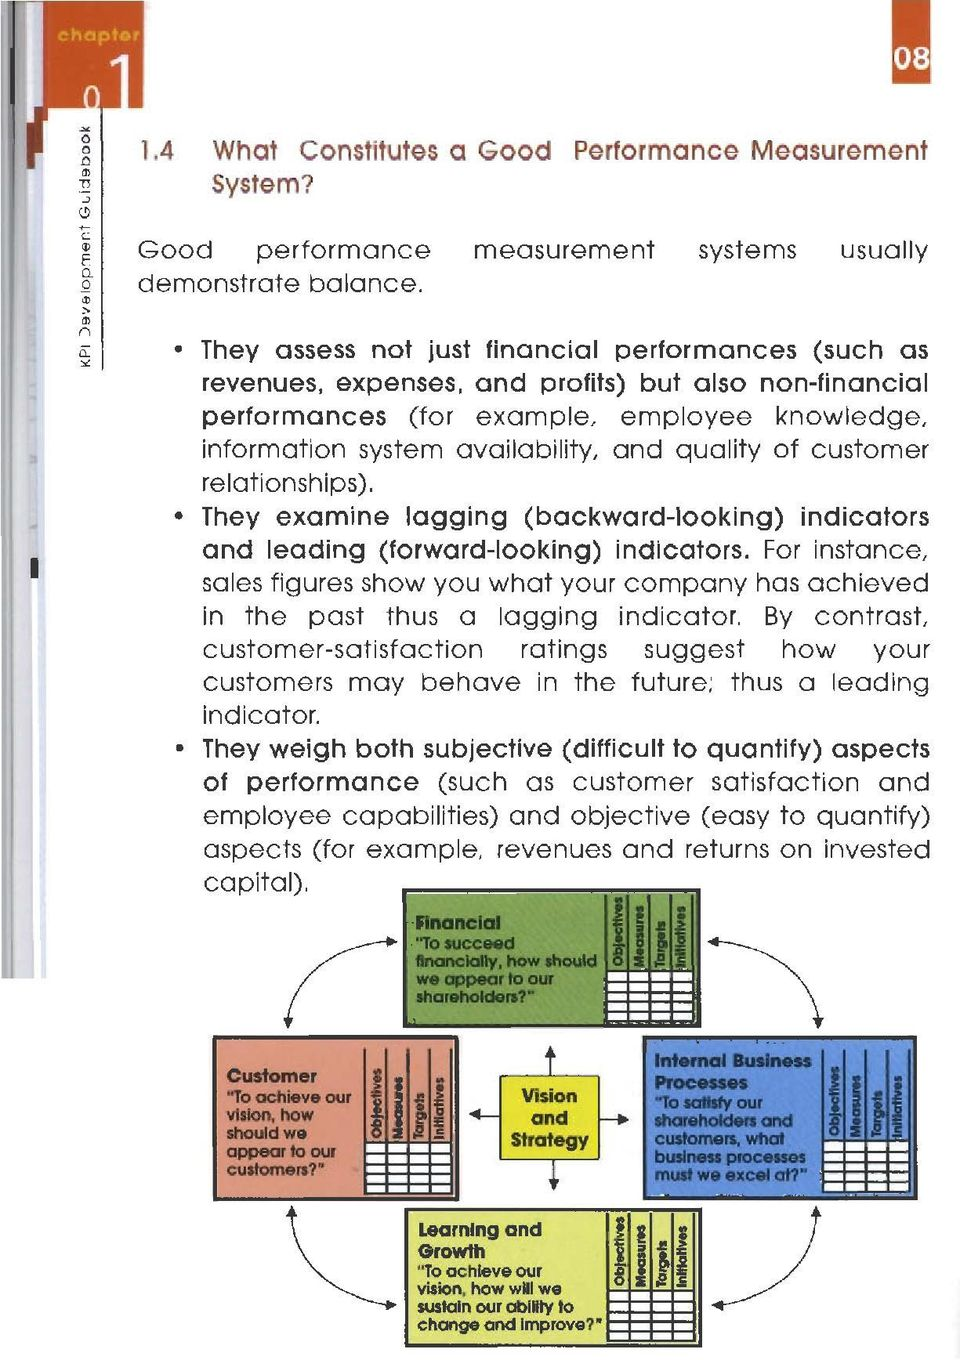 information system availability, and quality of customer relationships). They examine lagging (backward-looklng) indicators and leading (forward-looking) indlcators.